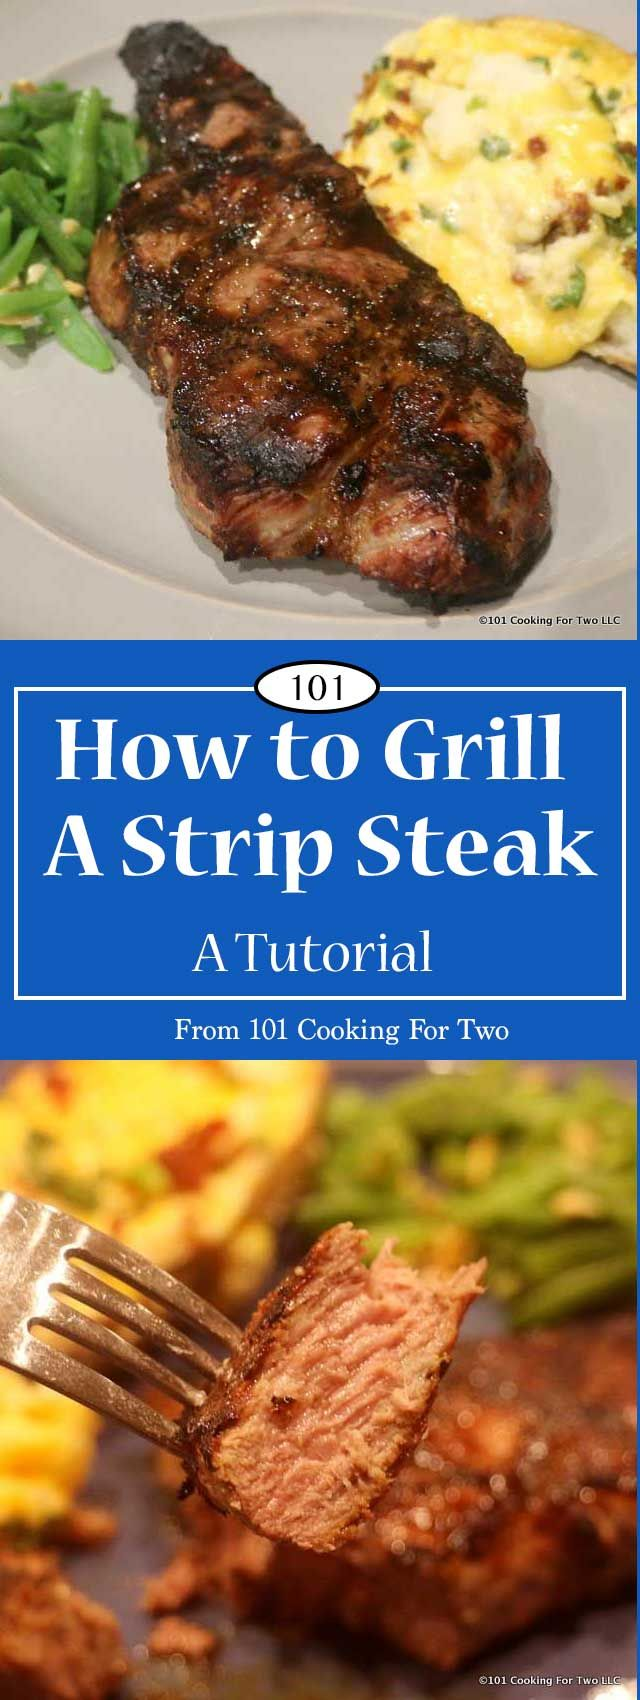 Step by step photo instruction tutorial of how to grill a strip steak on a gas grill.  via @drdan101cft